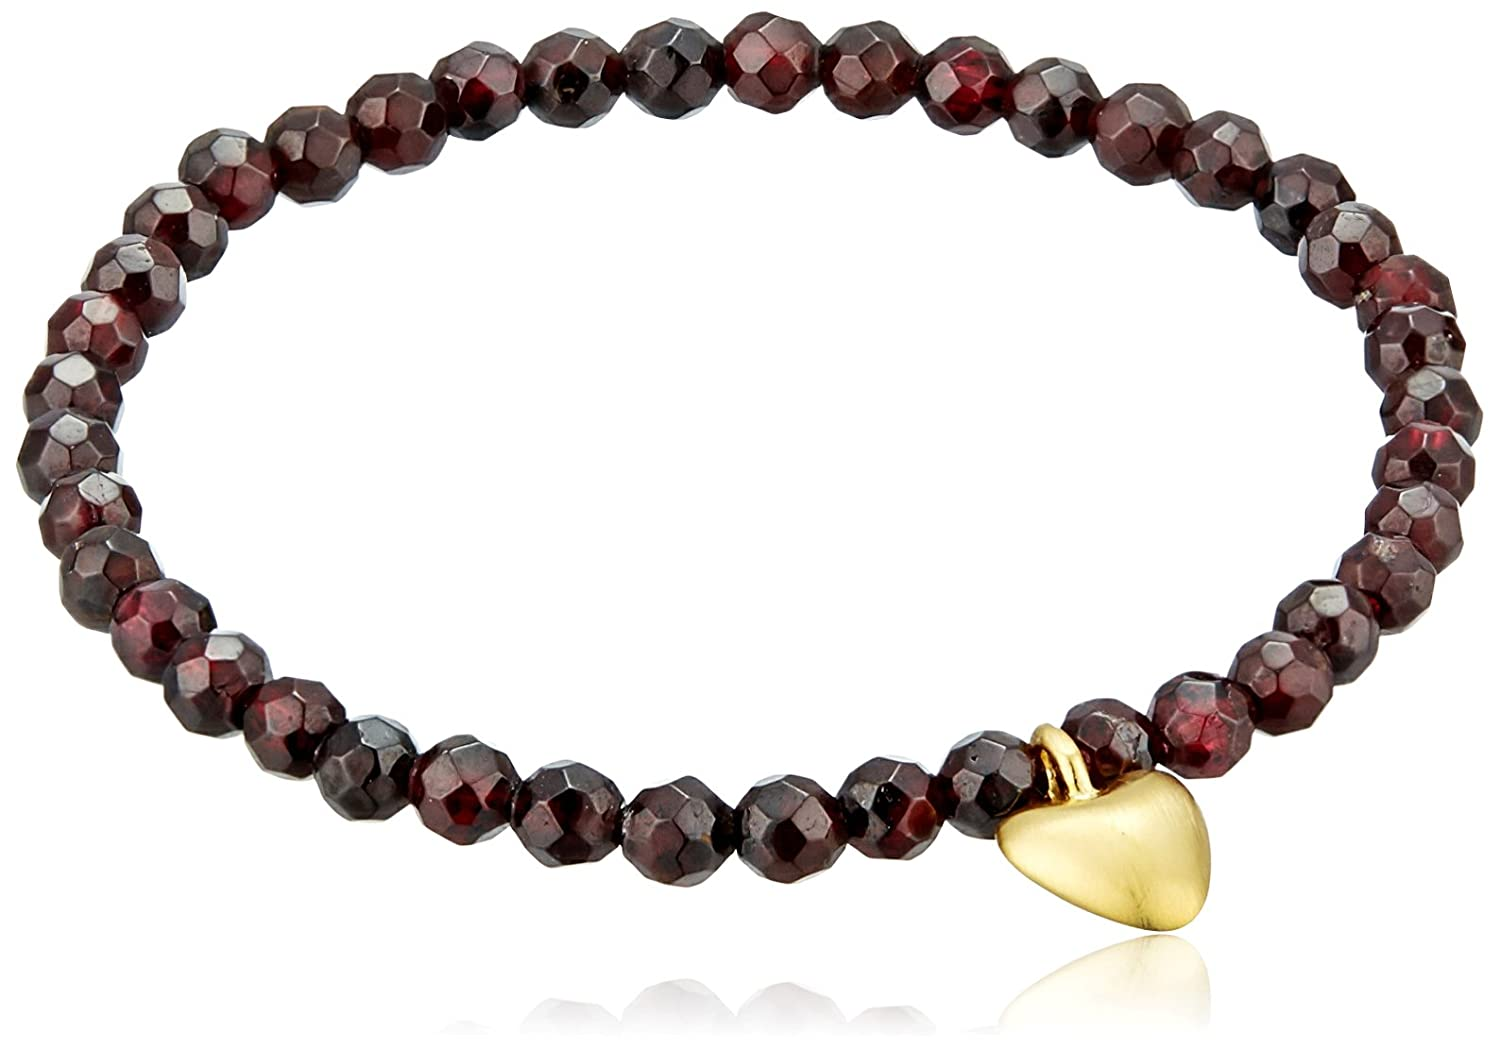 Satya Jewelry Garnet Heart Stretch Bracelet BG2A-33-B